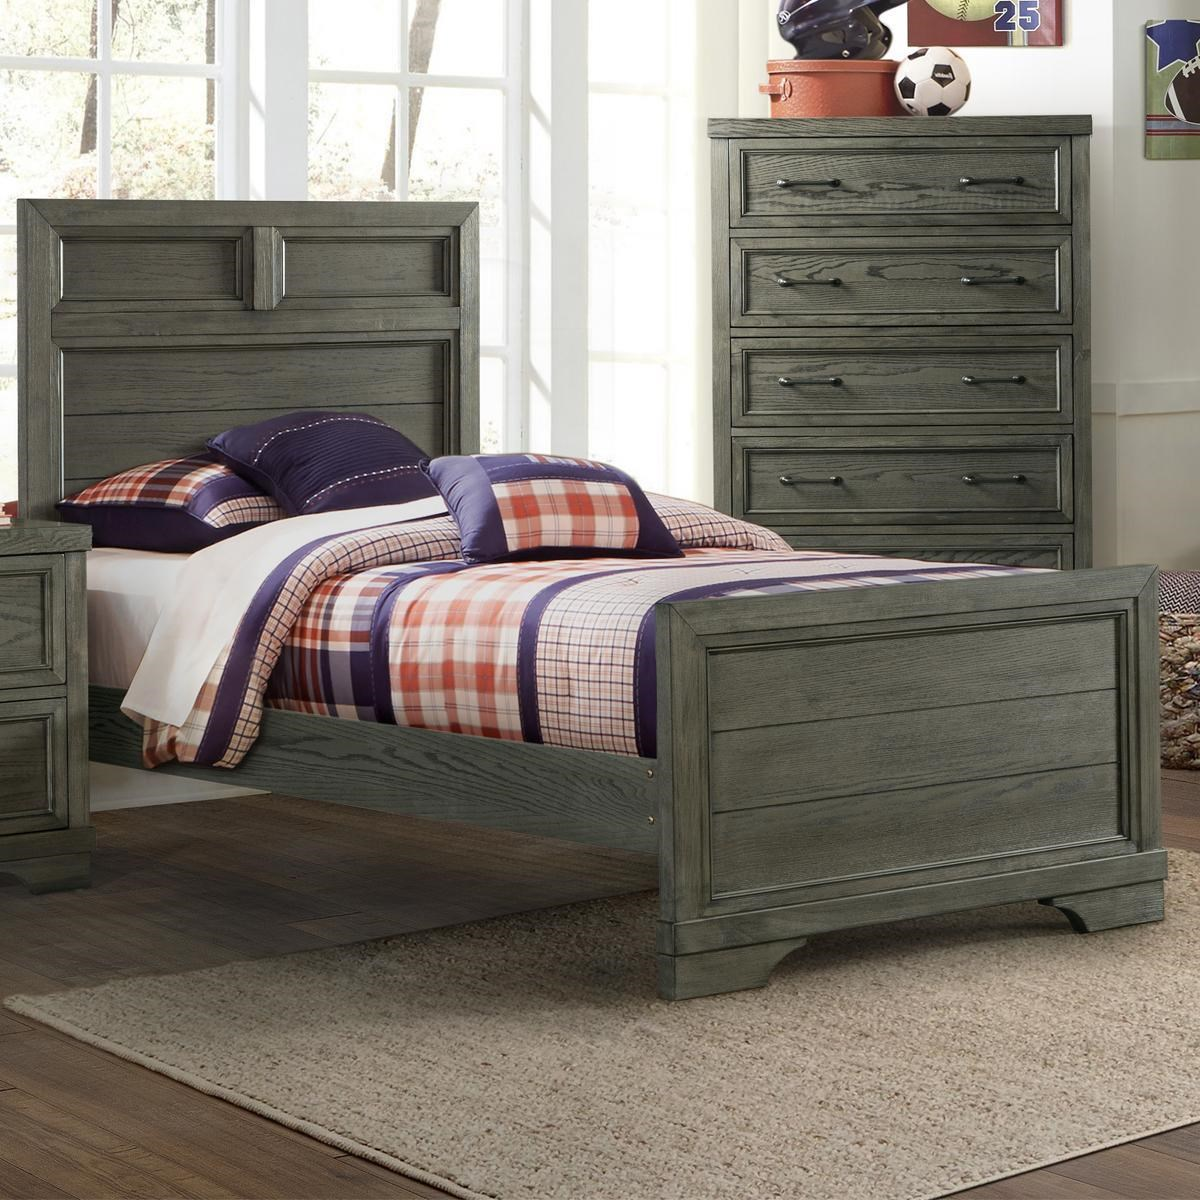 Kemp Kemp Twin Bed by Westwood Design at Morris Home